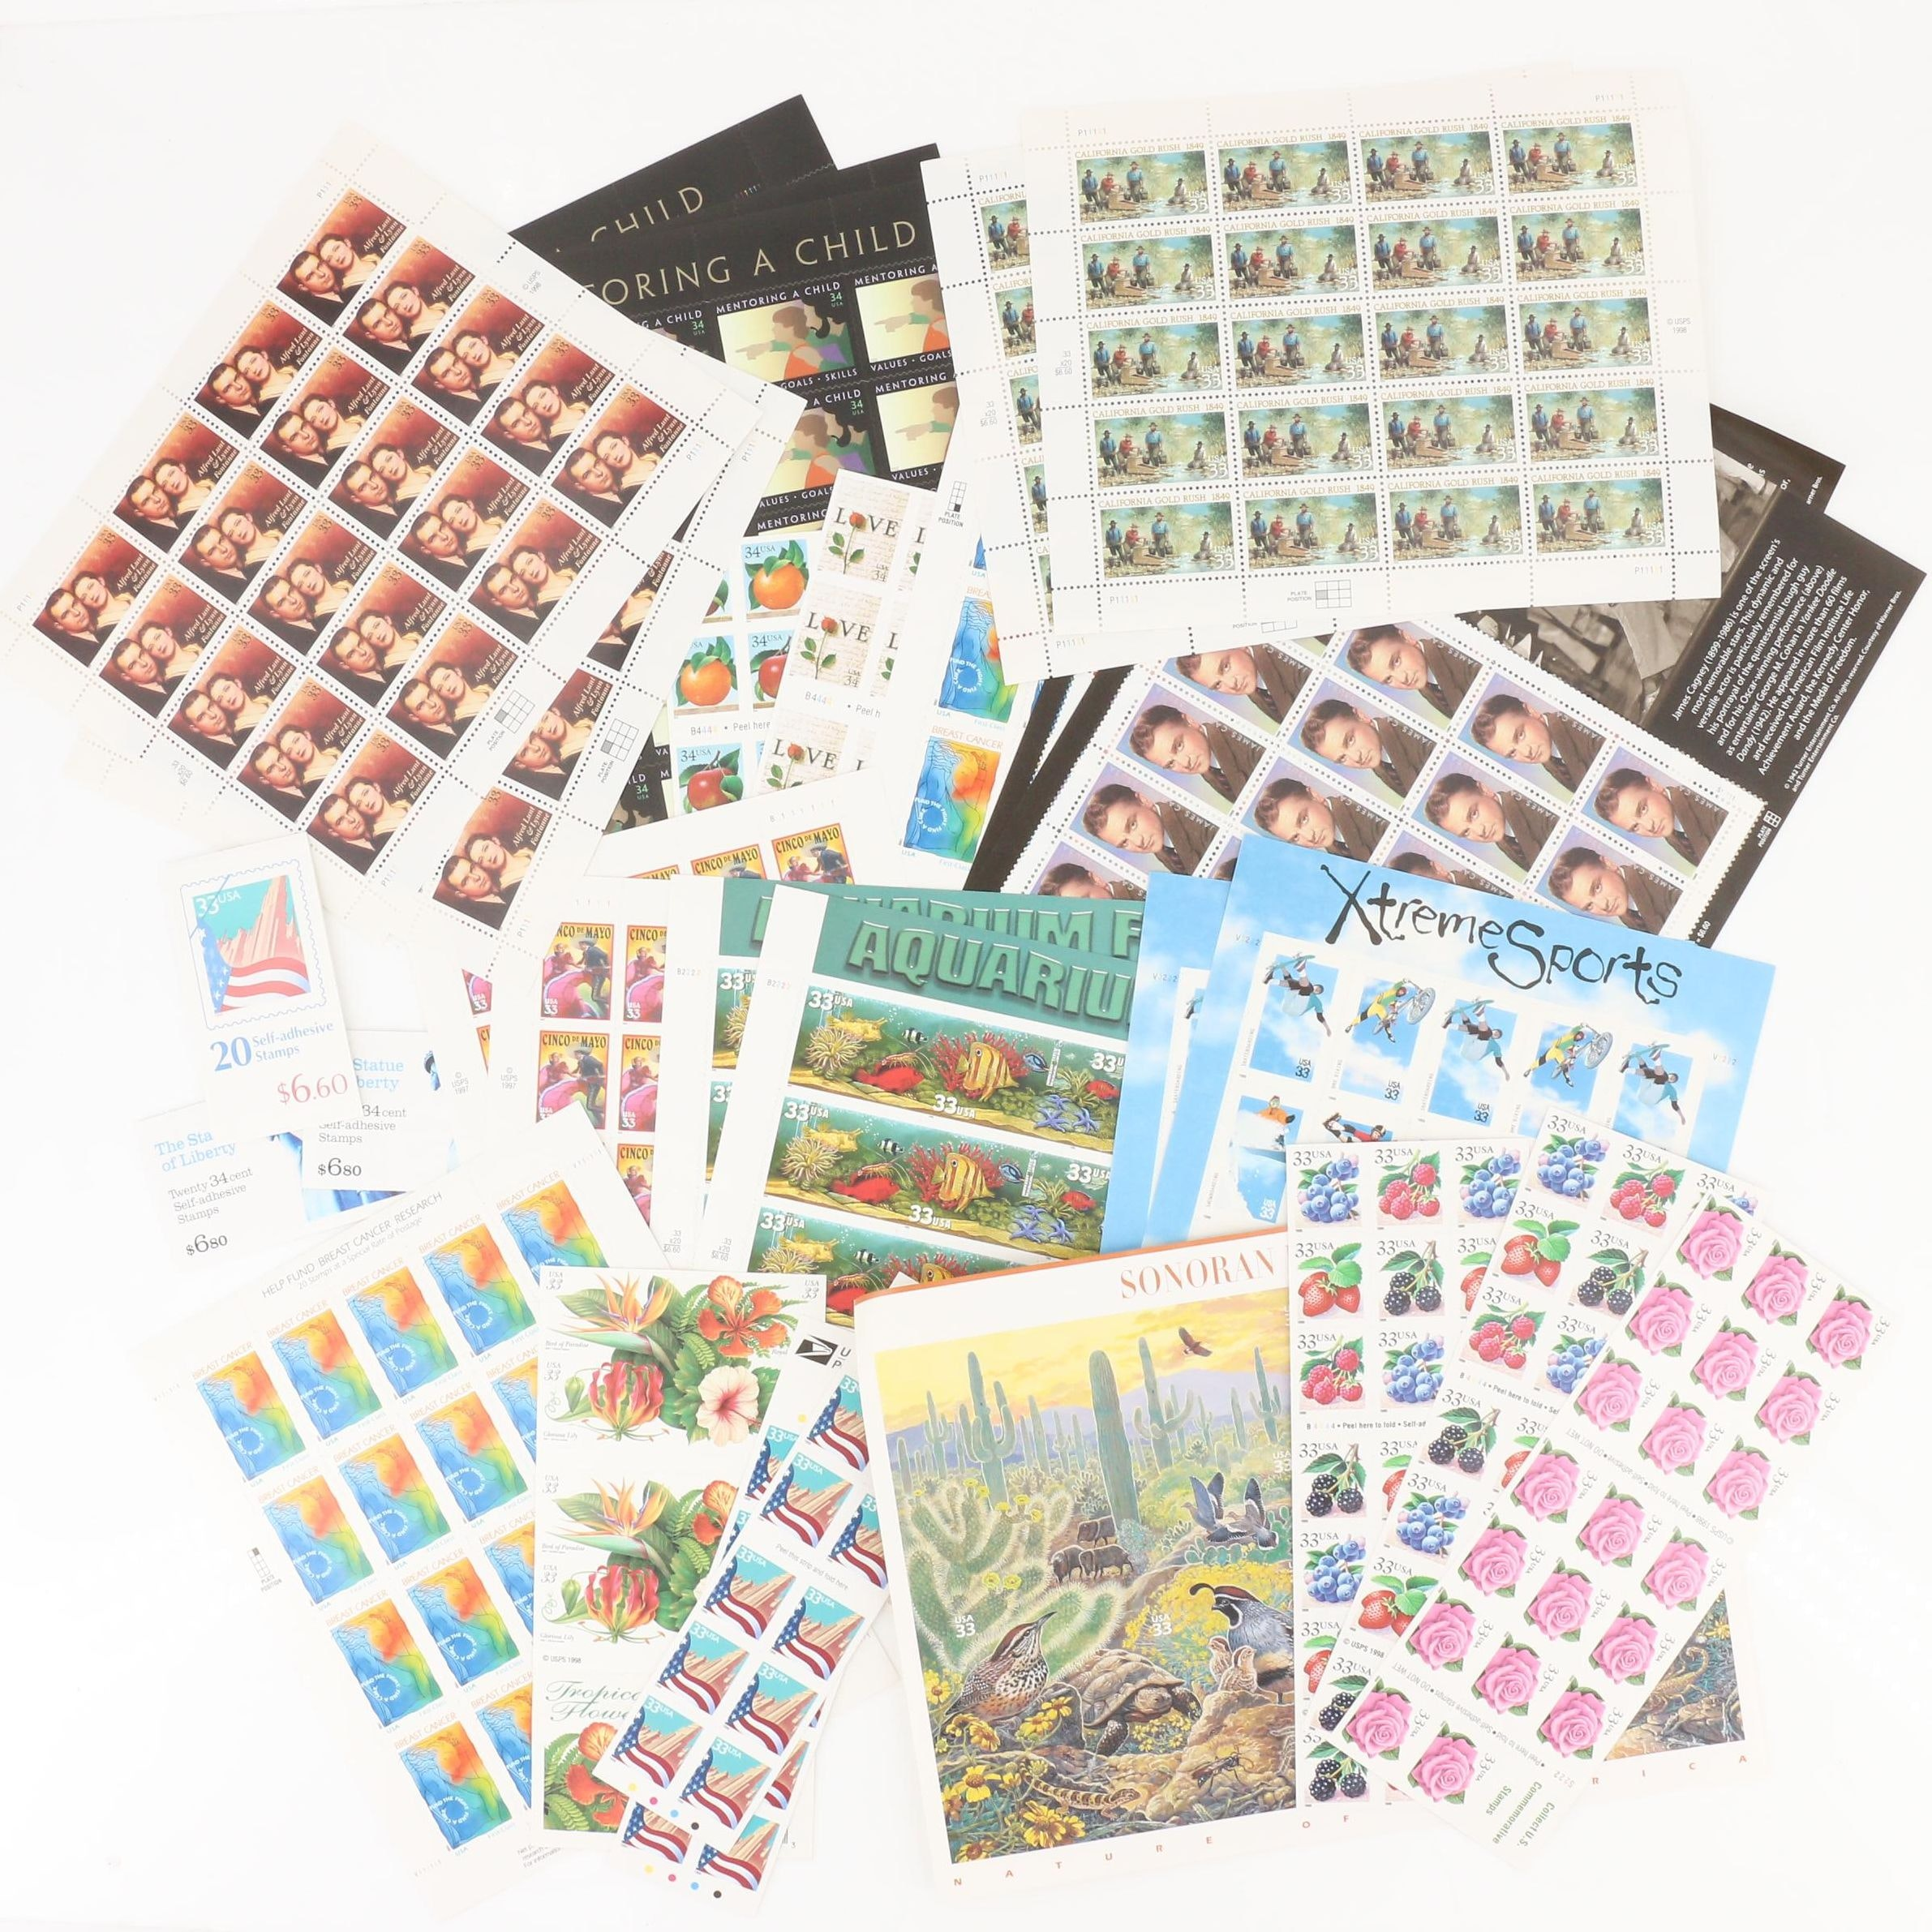 Group of 28 U.S. Postage Stamp Sheets and Books